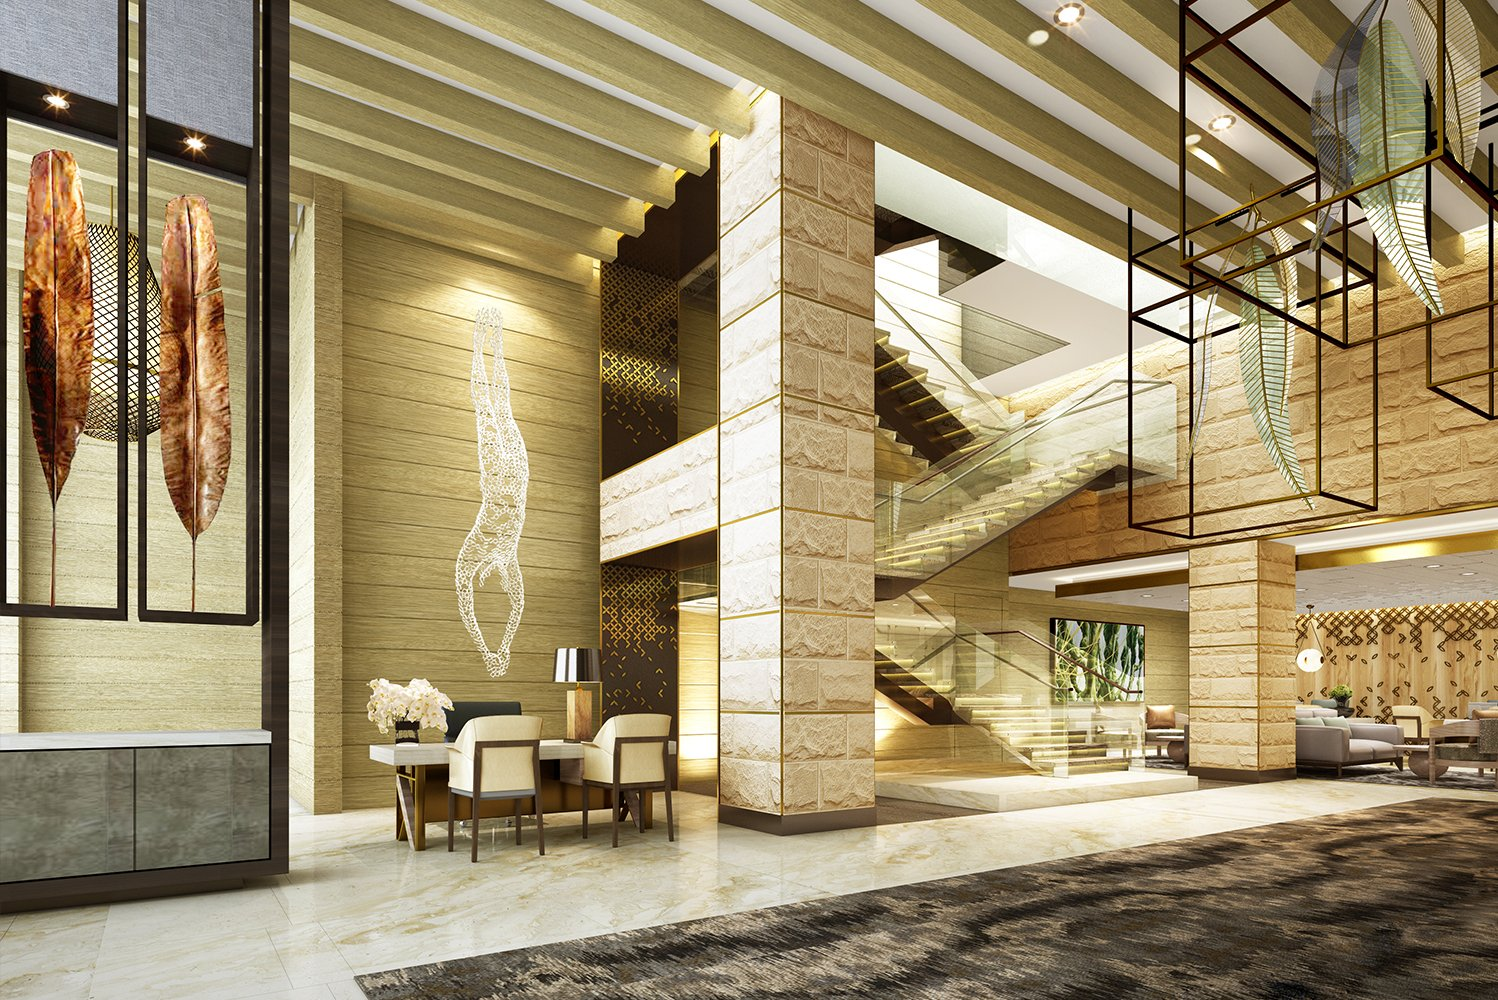 Design details will include sandstone walled lobby spaces, sweeping sculptural statements, dramatic lighting, glass encased stairwells and new furnishings.